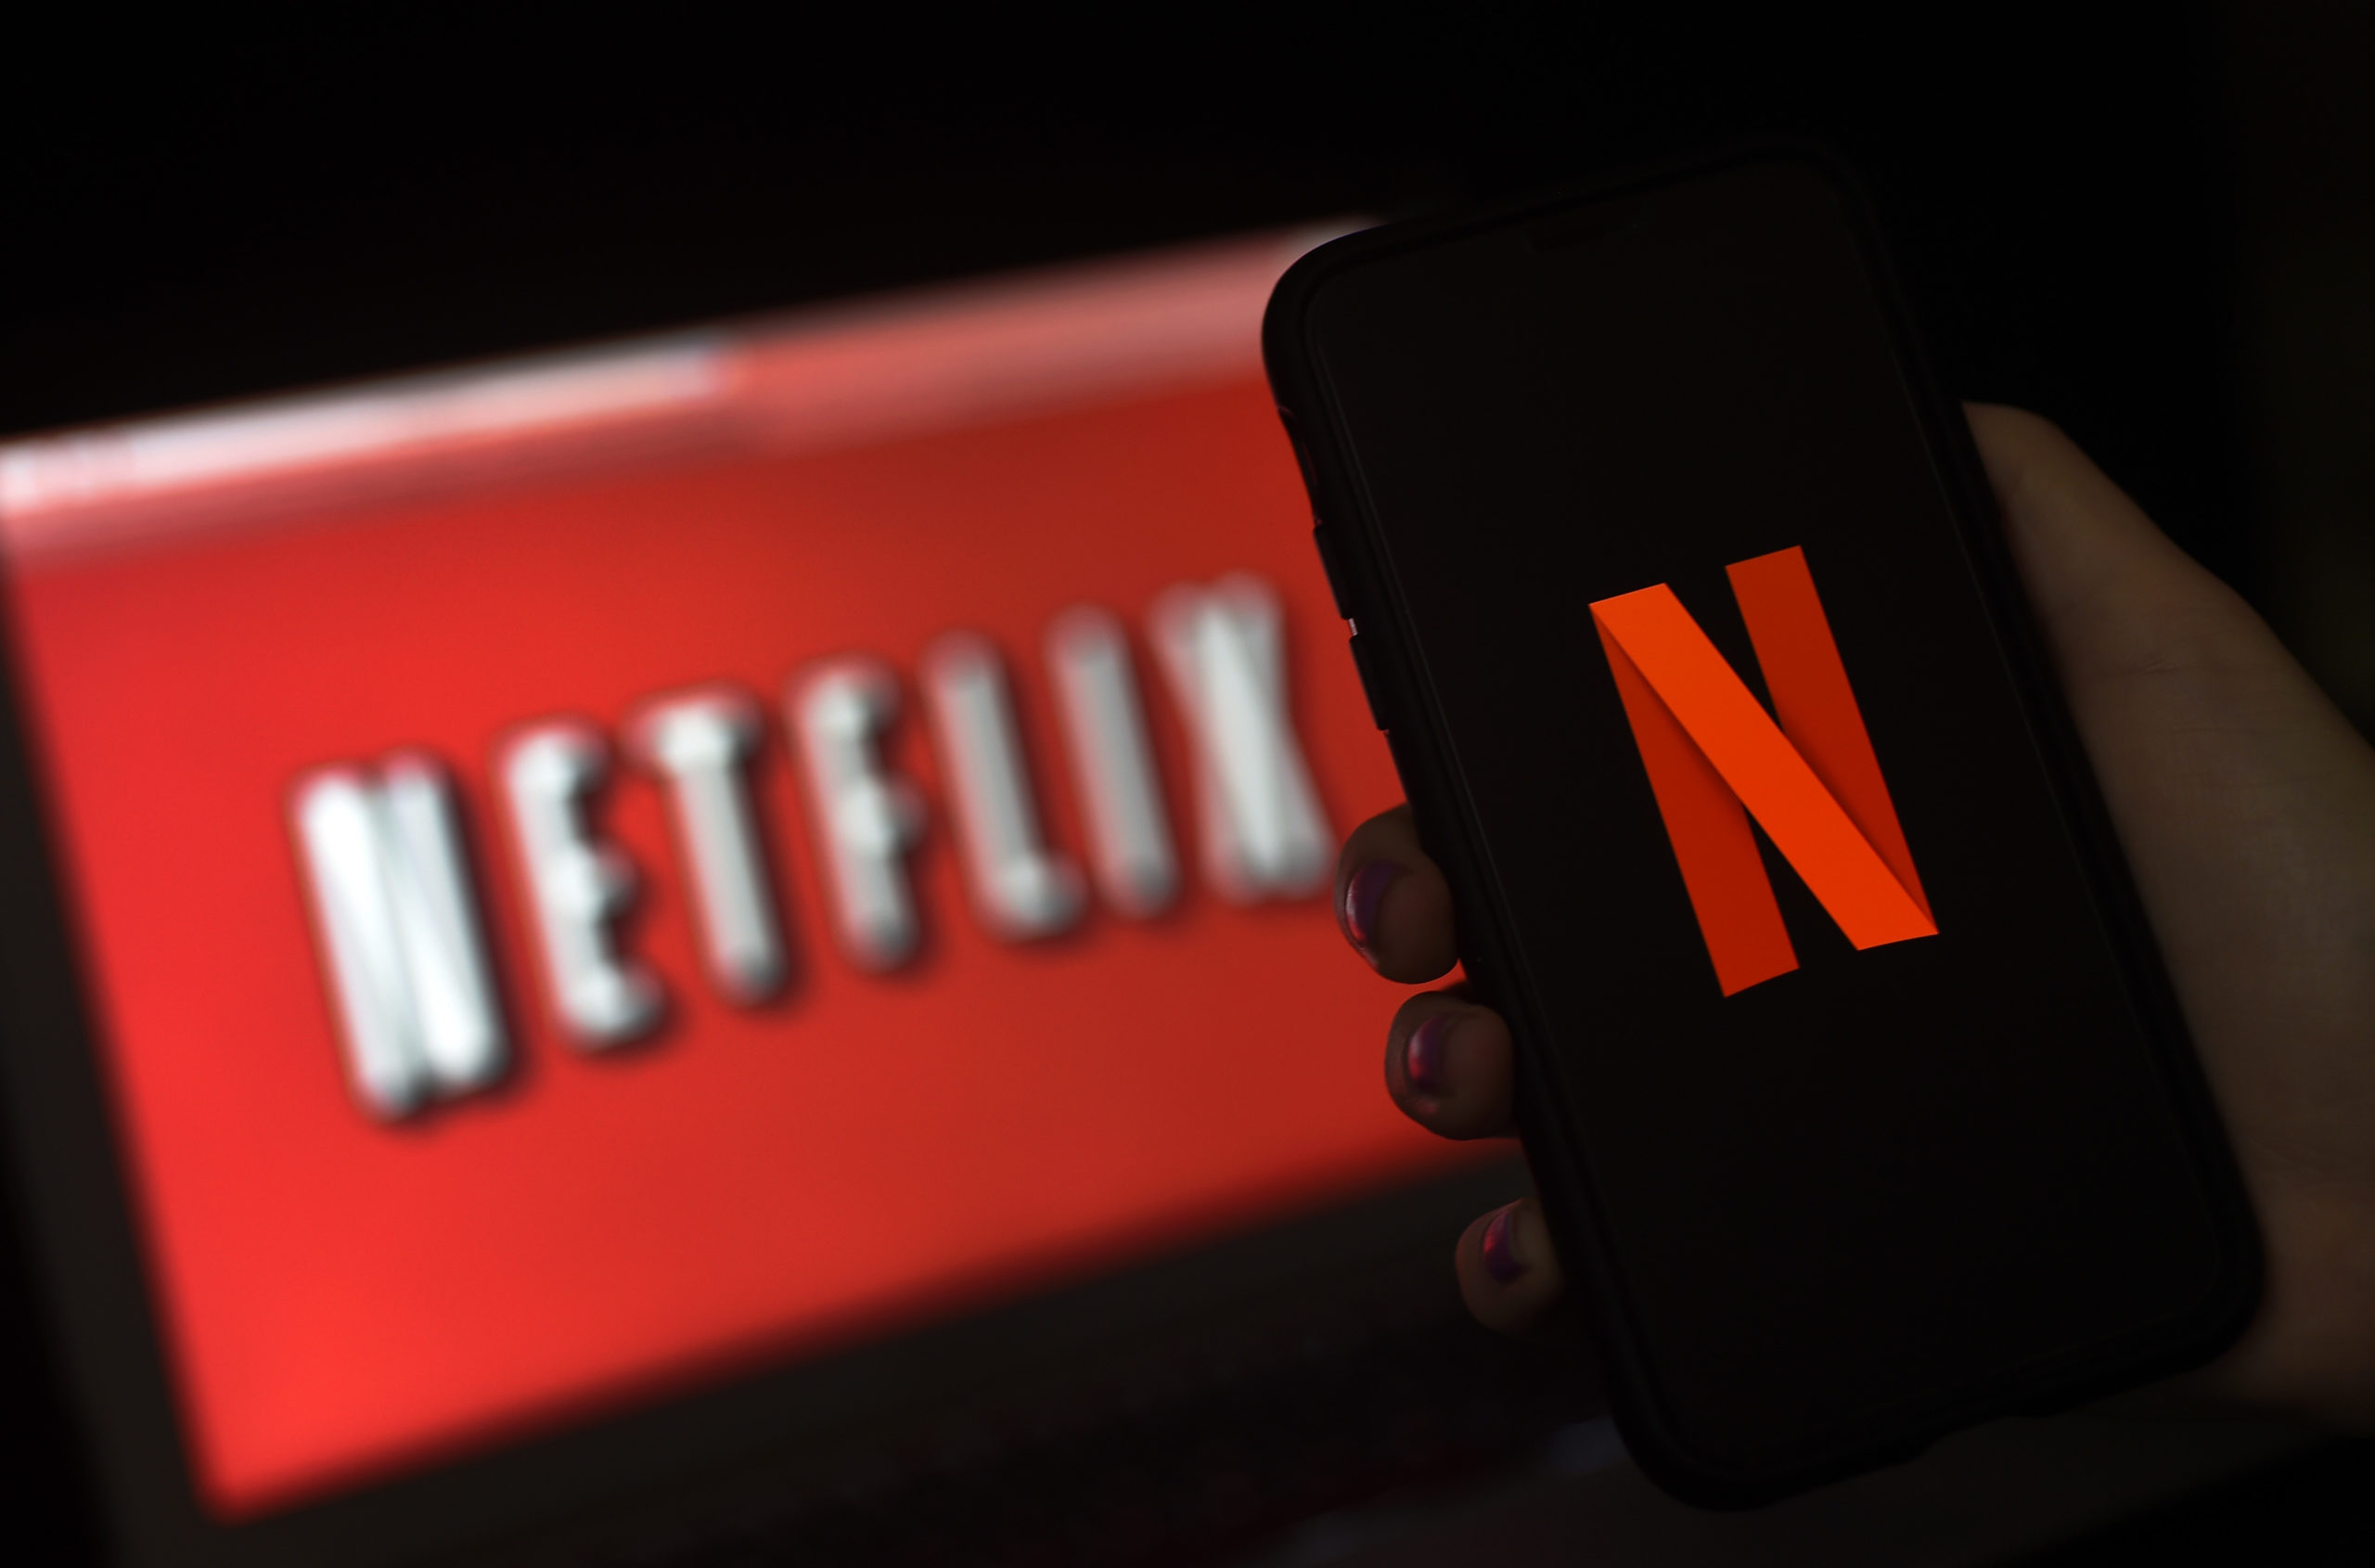 In this photo illustration a computer screen and mobile phone display the Netflix logo on March 31, 2020 in Arlington, Virginia. - According to Netflix chief content officer Ted Sarandos, Netflix viewership is on the rise during the coronavirus outbreak. (Photo by Olivier DOULIERY / AFP) (Photo by OLIVIER DOULIERY/AFP via Getty Images)